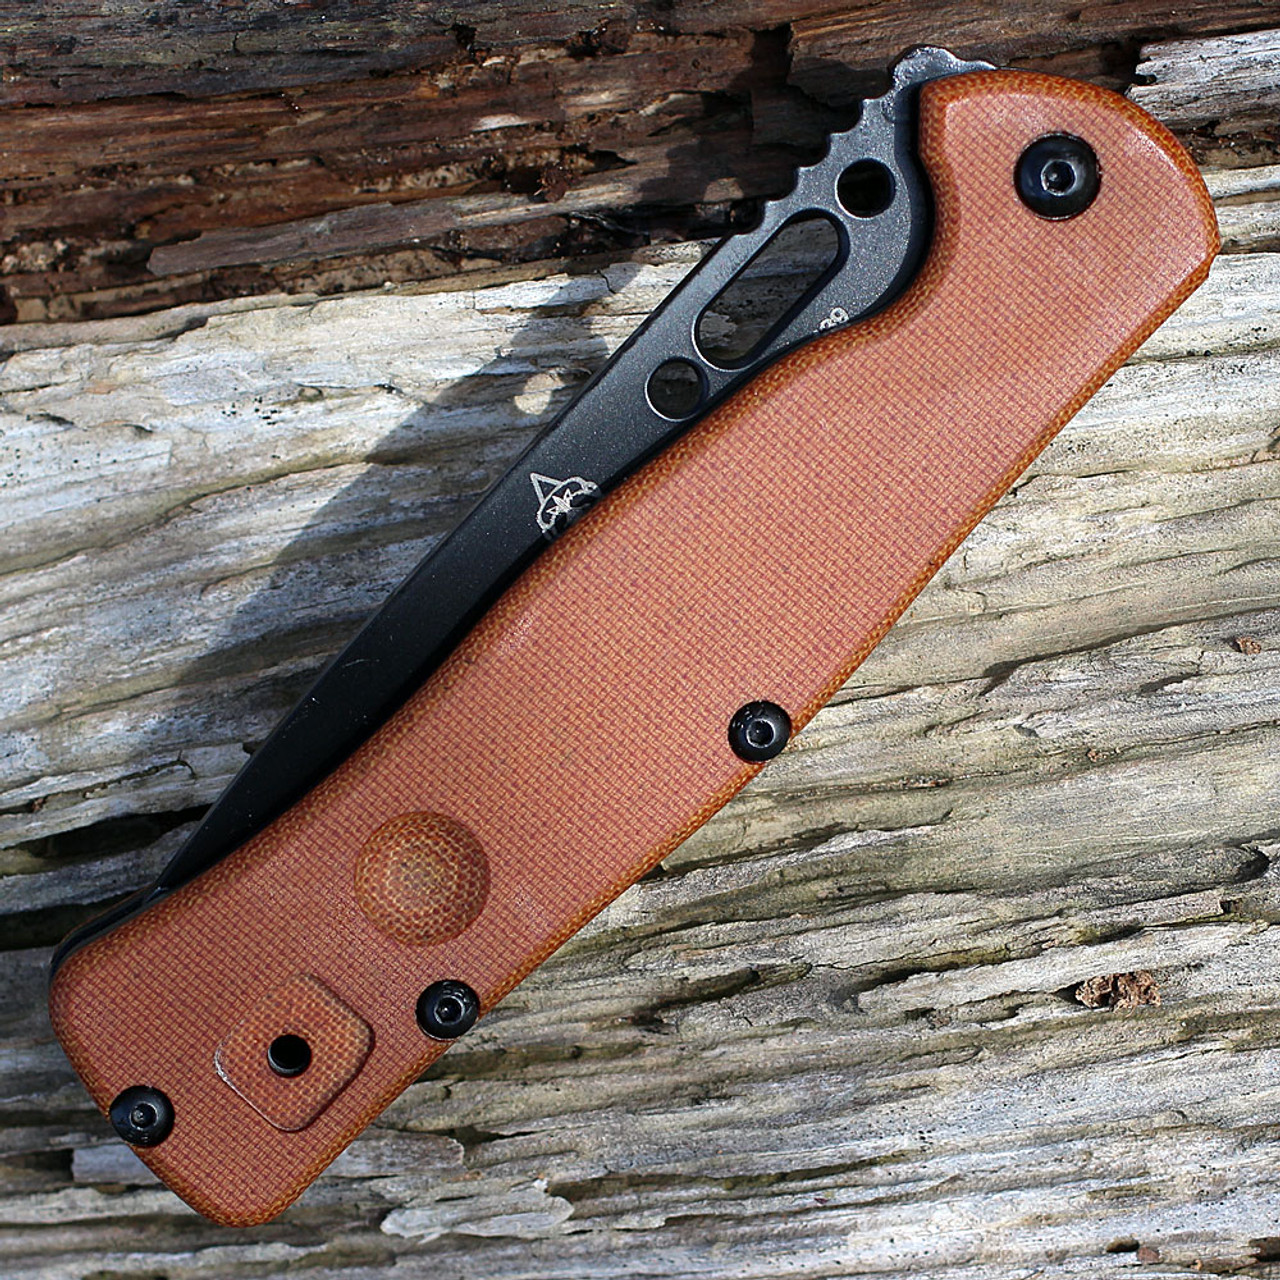 "TOPS FCF01 Fieldcraft Folder, 4.38"" 1095 Plain Blade, Tan Canvas Micarta Handle"